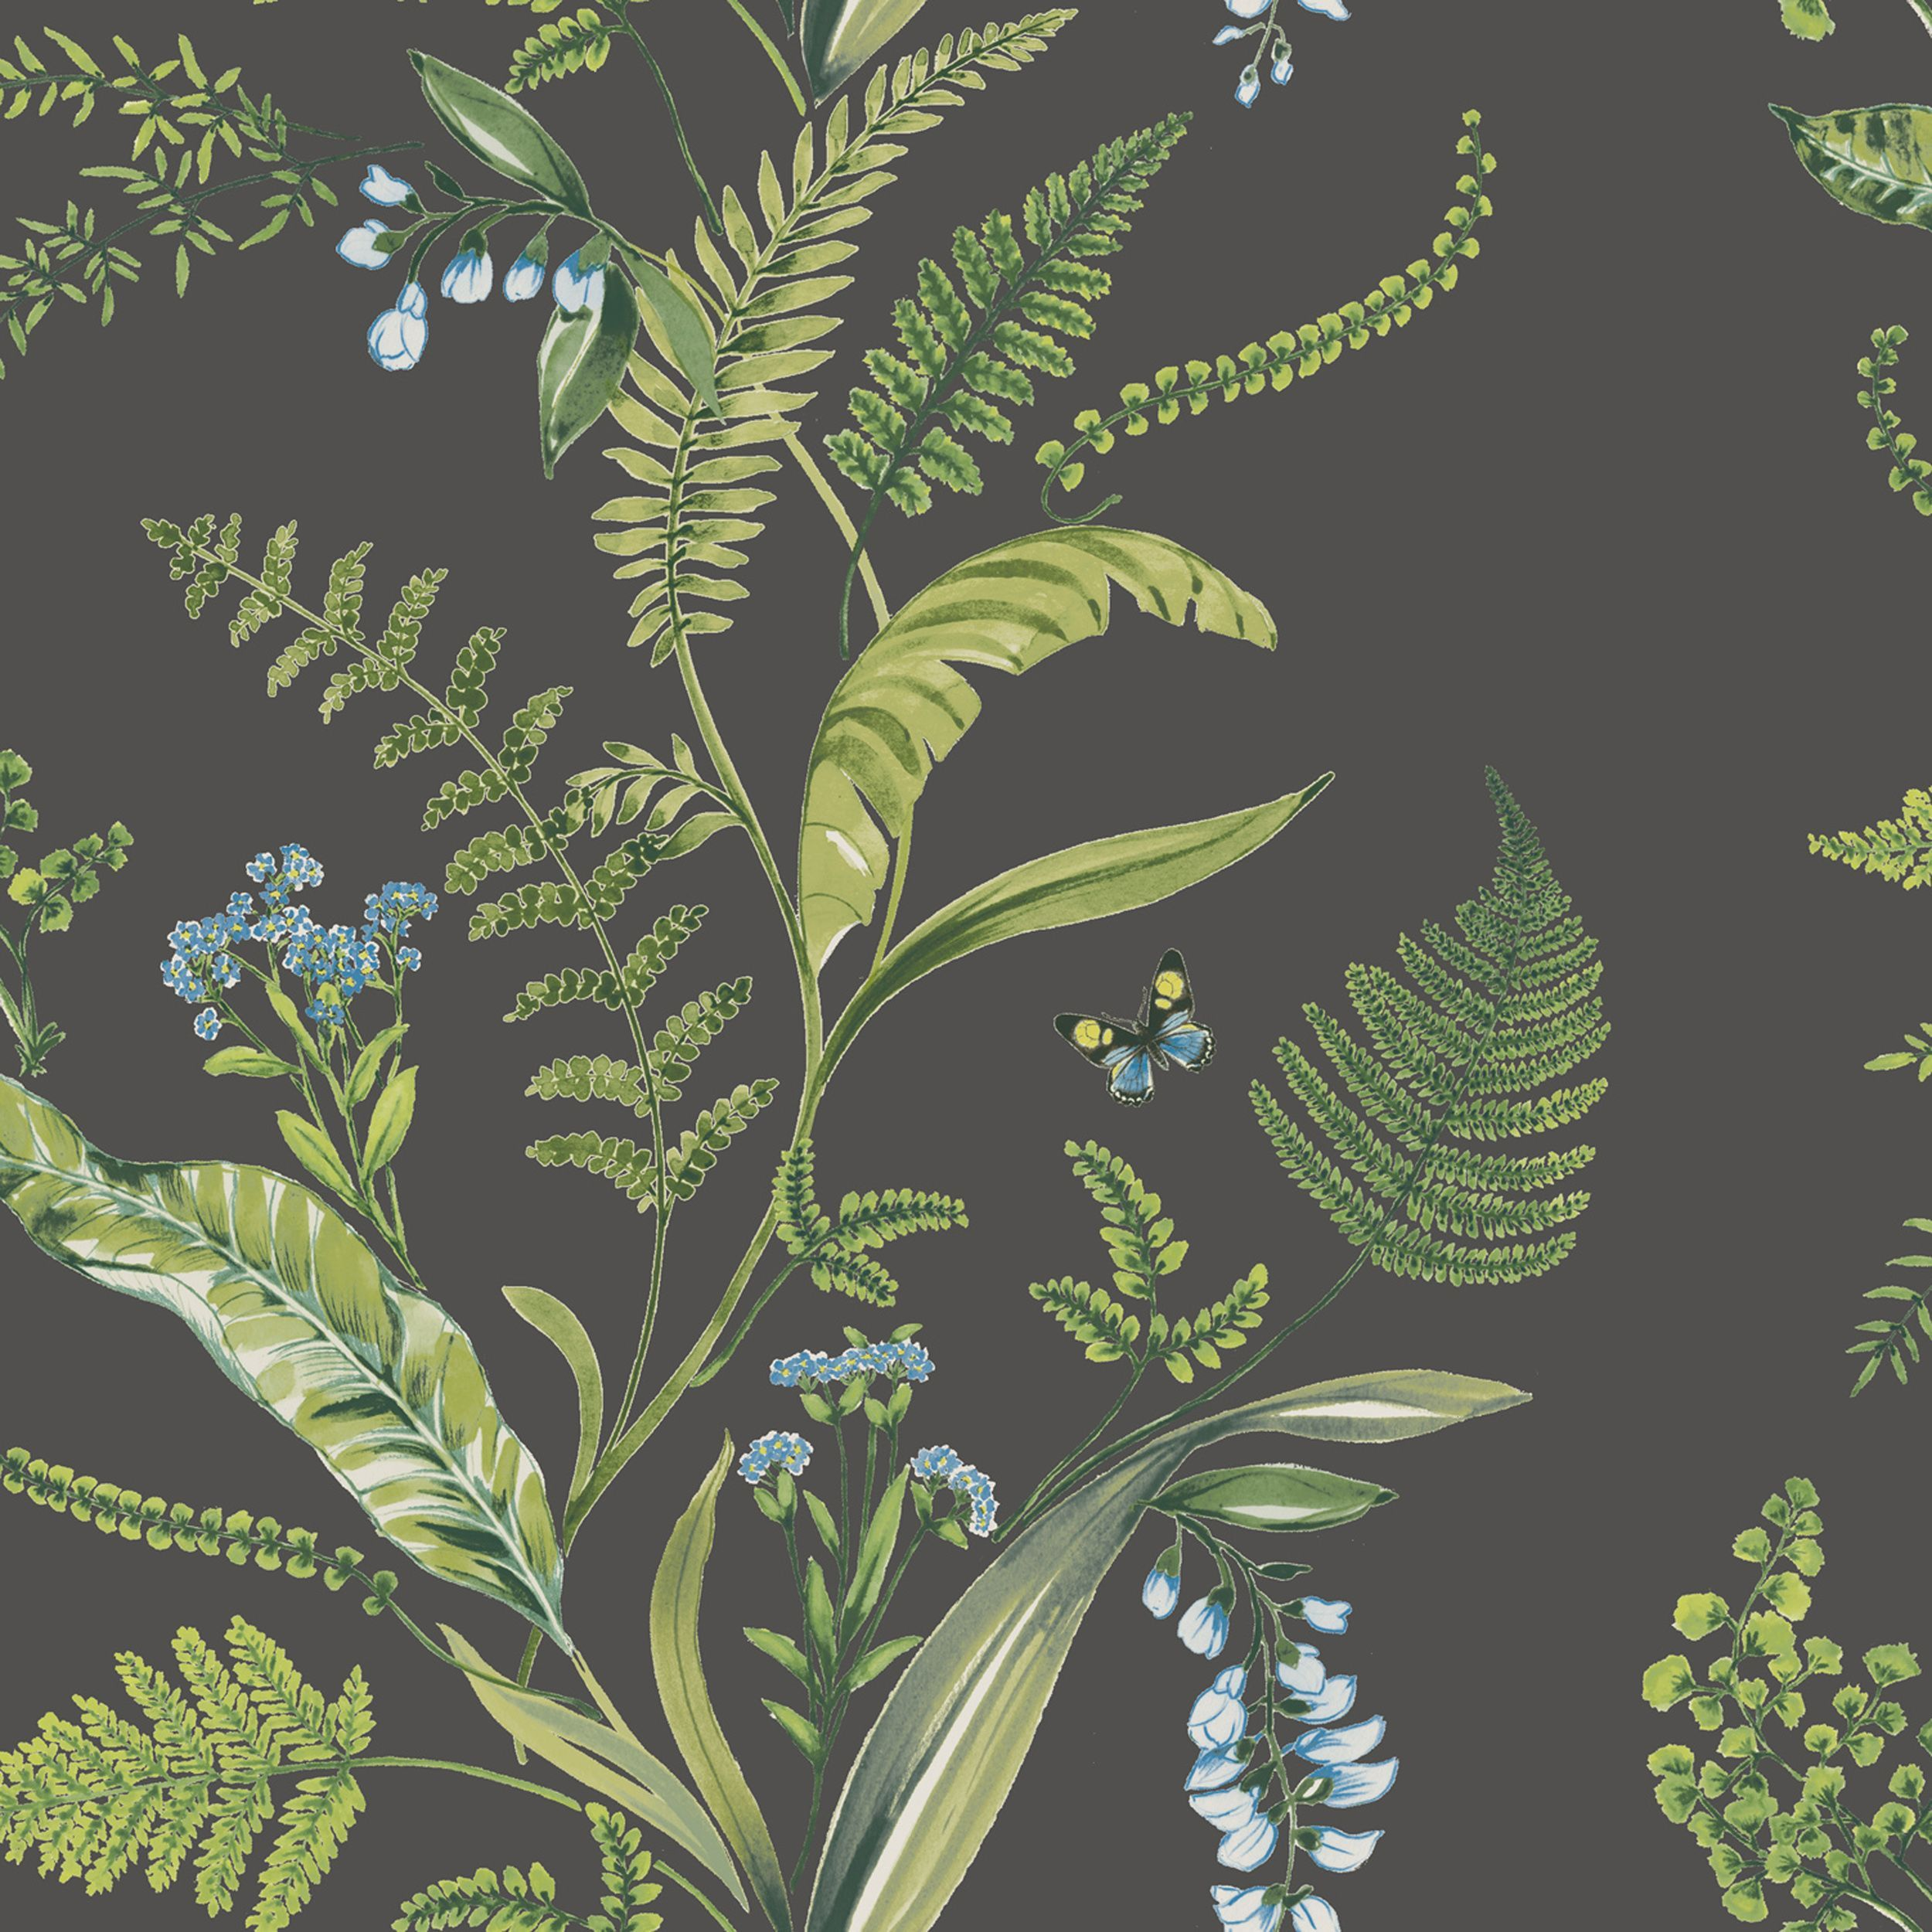 Computer Wallpaper Nz: K2 Fern & Flowers Green Floral Wallpaper